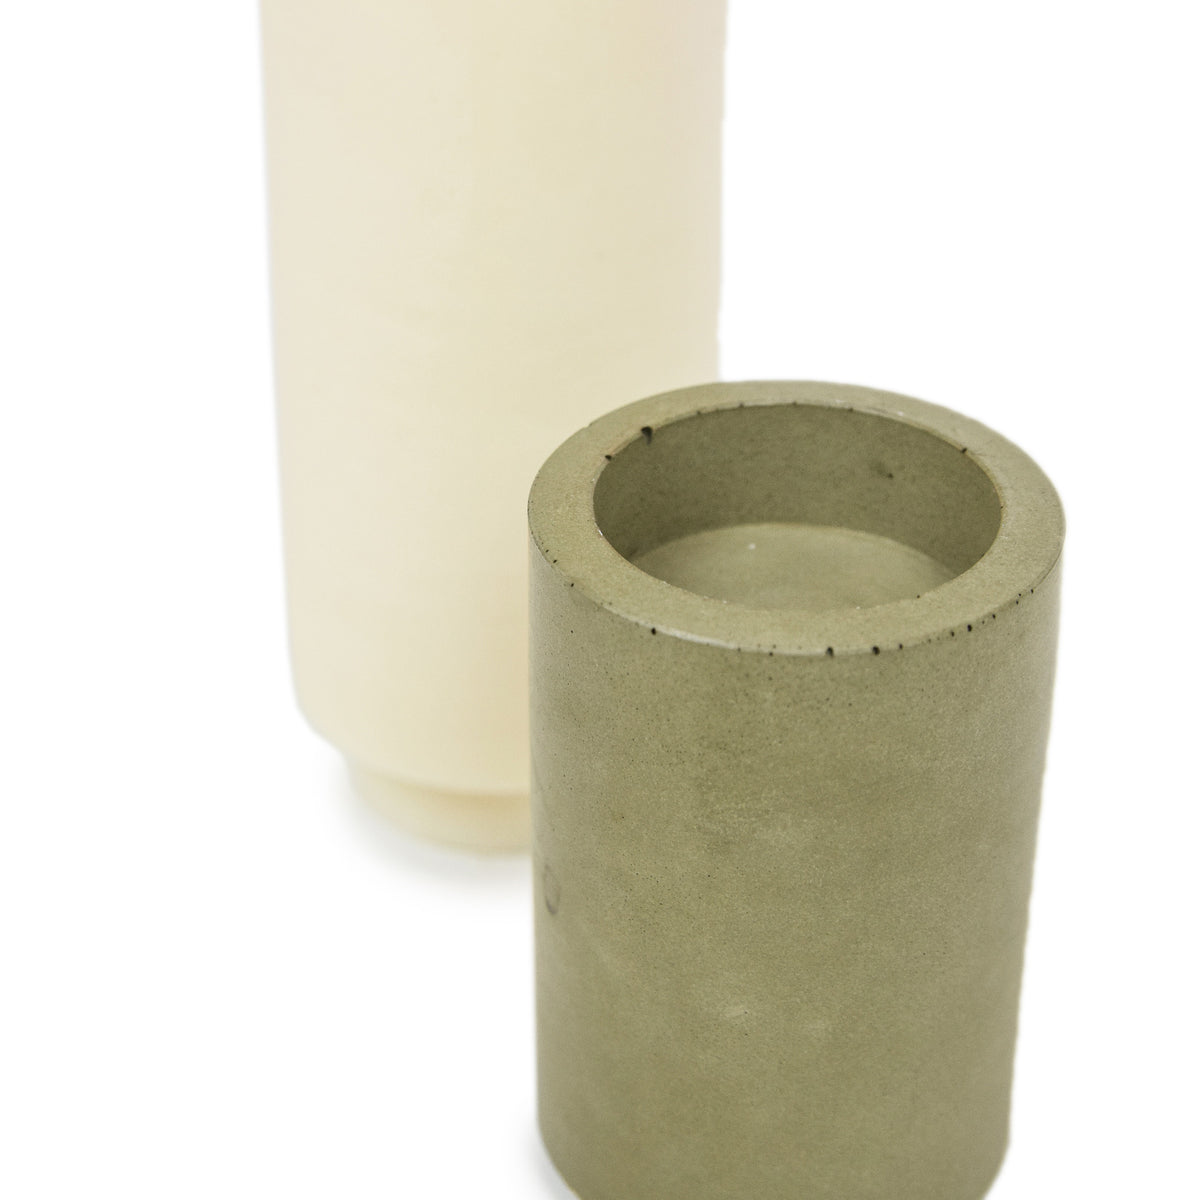 Concrete & Wax Tobacco And Oak Candle And Olive Concrete Holder Slim DETAIL